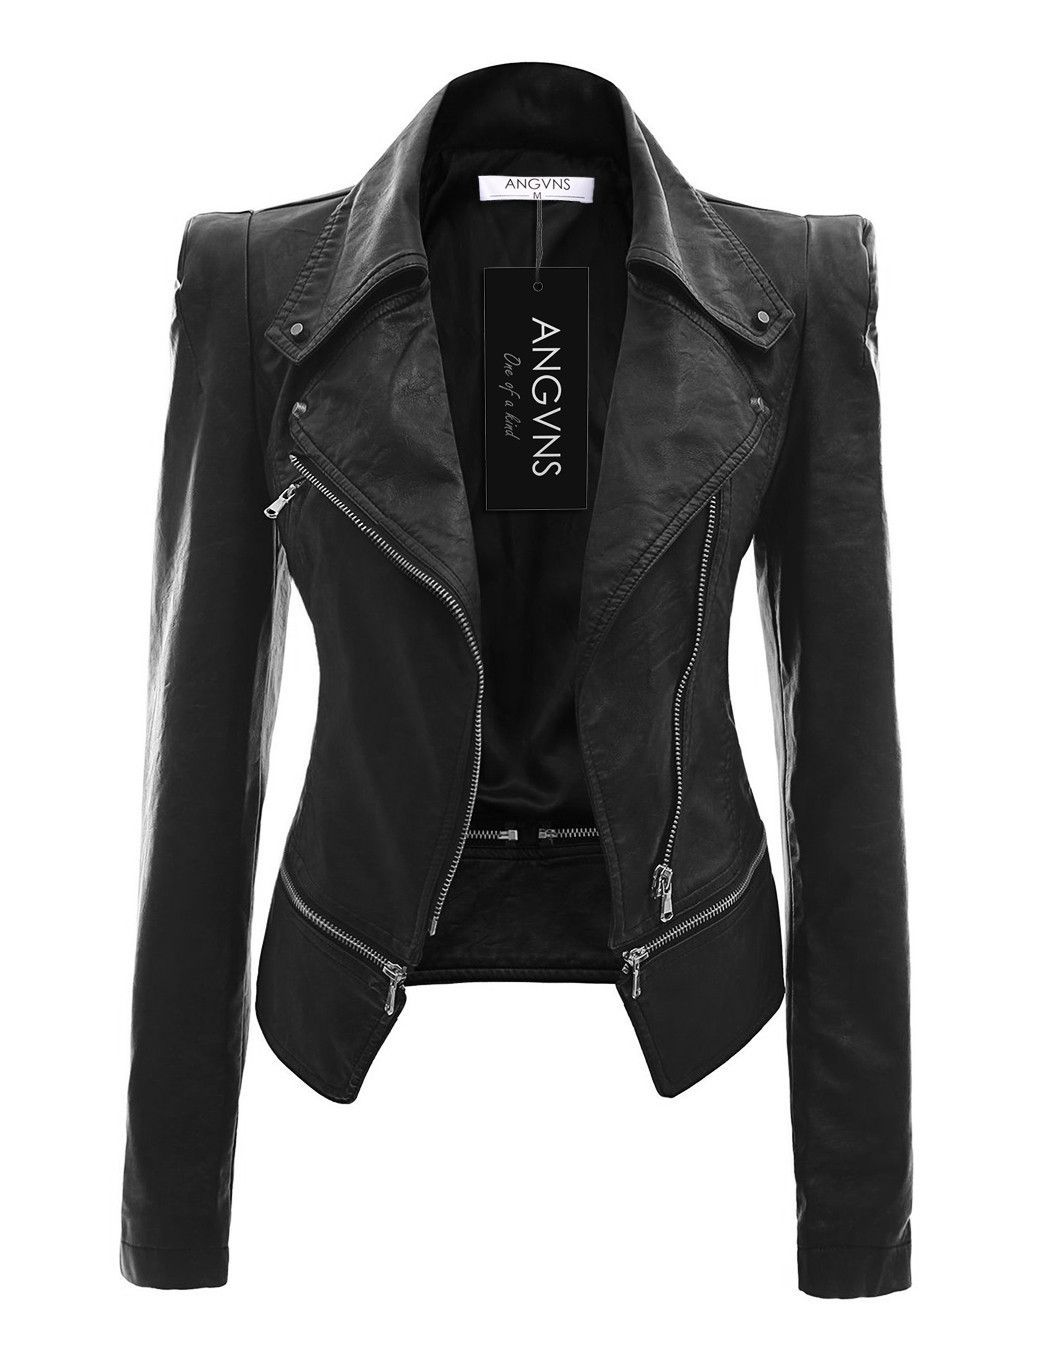 Coole Jacken Women 39s Leather Jacket Christmas Wish List Girly